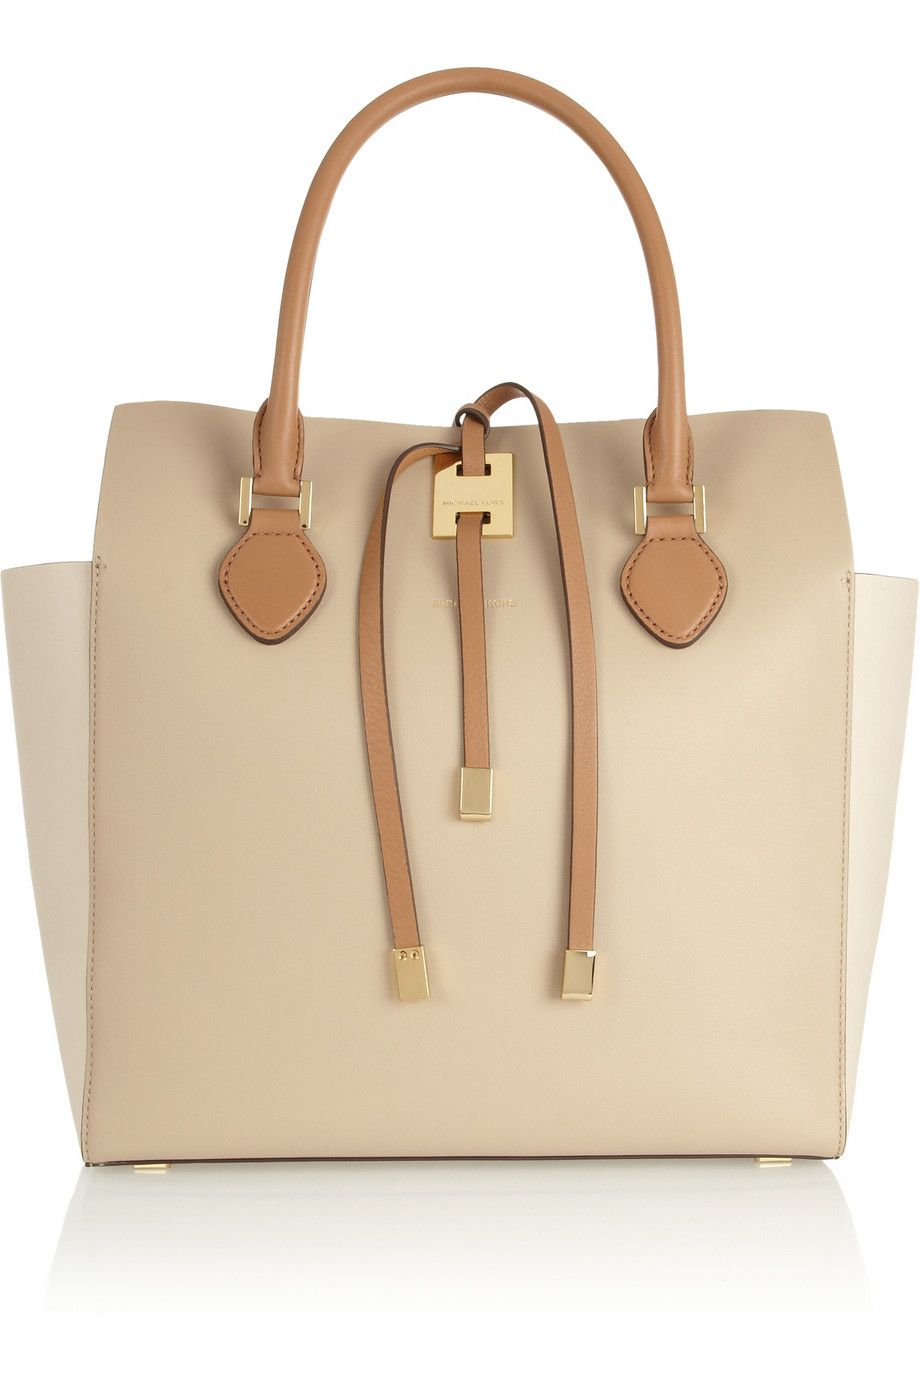 70a31b1b01fb Michael Kors | Miranda large color-block leather tote | NET-A-PORTER.COM